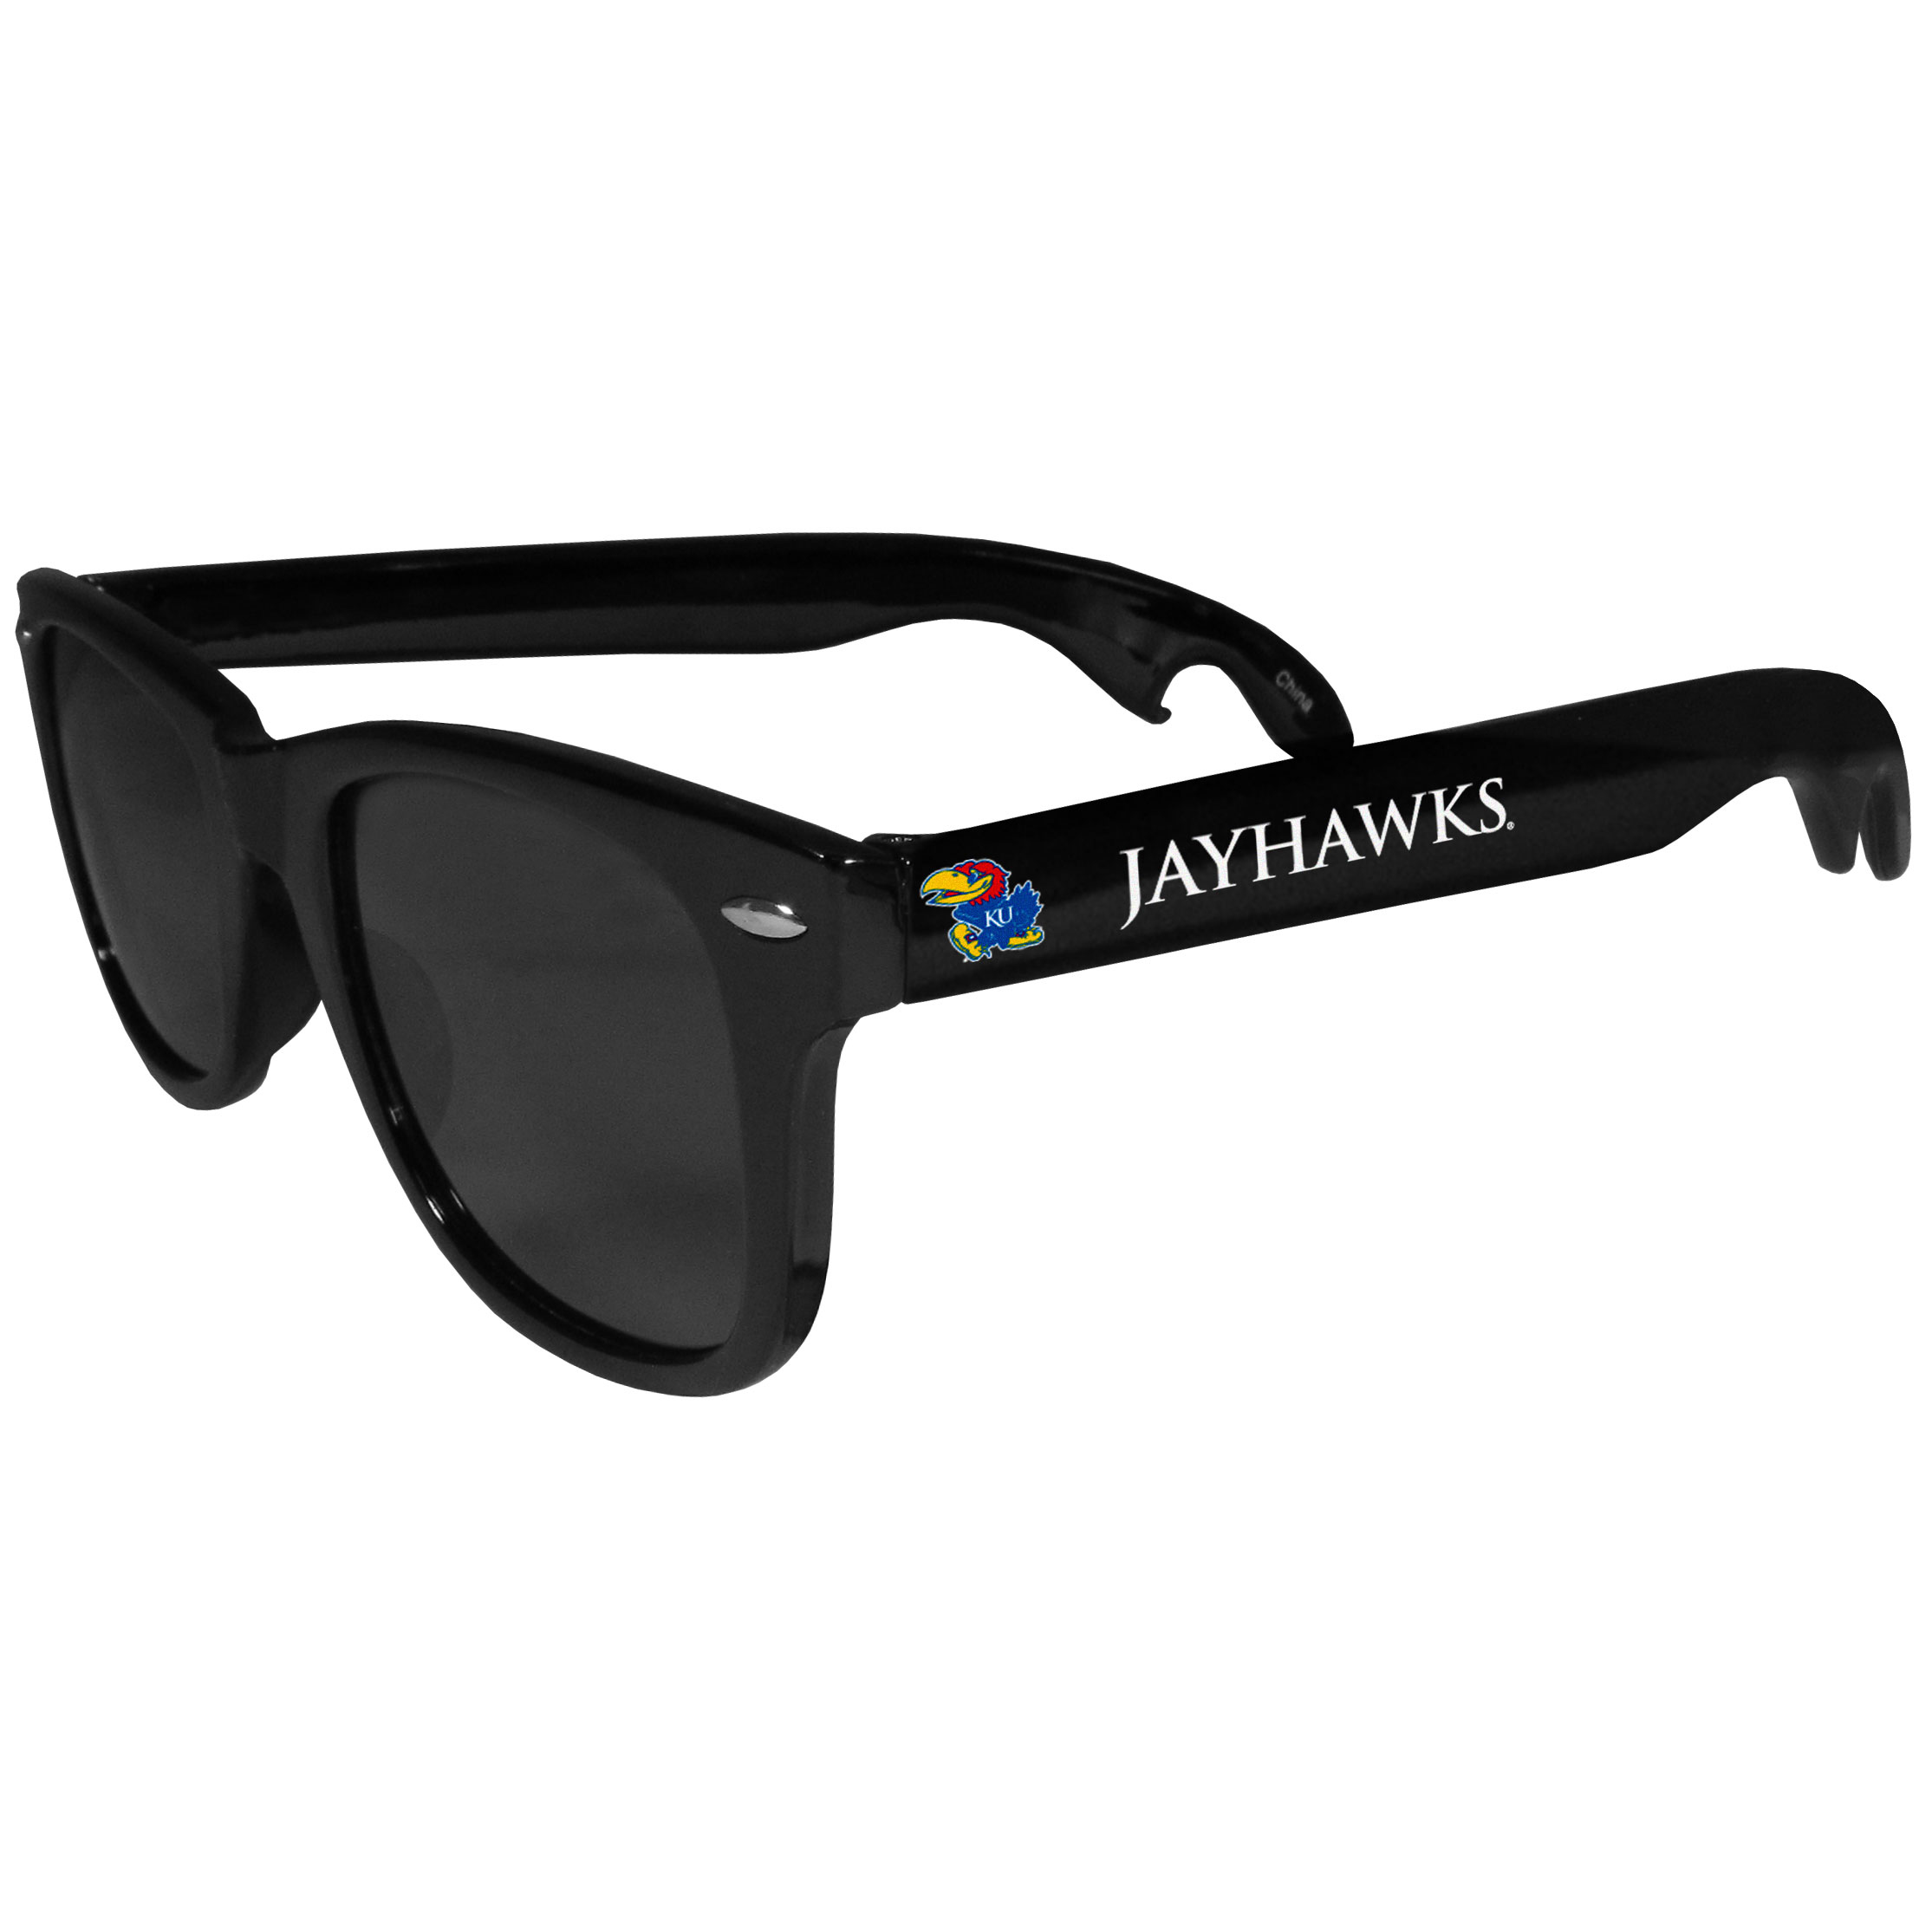 Kansas Jayhawks Beachfarer Bottle Opener Sunglasses - Seriously, these sunglasses open bottles! Keep the party going with these amazing Kansas Jayhawks bottle opener sunglasses. The stylish retro frames feature team designs on the arms and functional bottle openers on the end of the arms. Whether you are at the beach or having a backyard BBQ on game day, these shades will keep your eyes protected with 100% UVA/UVB protection and keep you hydrated with the handy bottle opener arms.